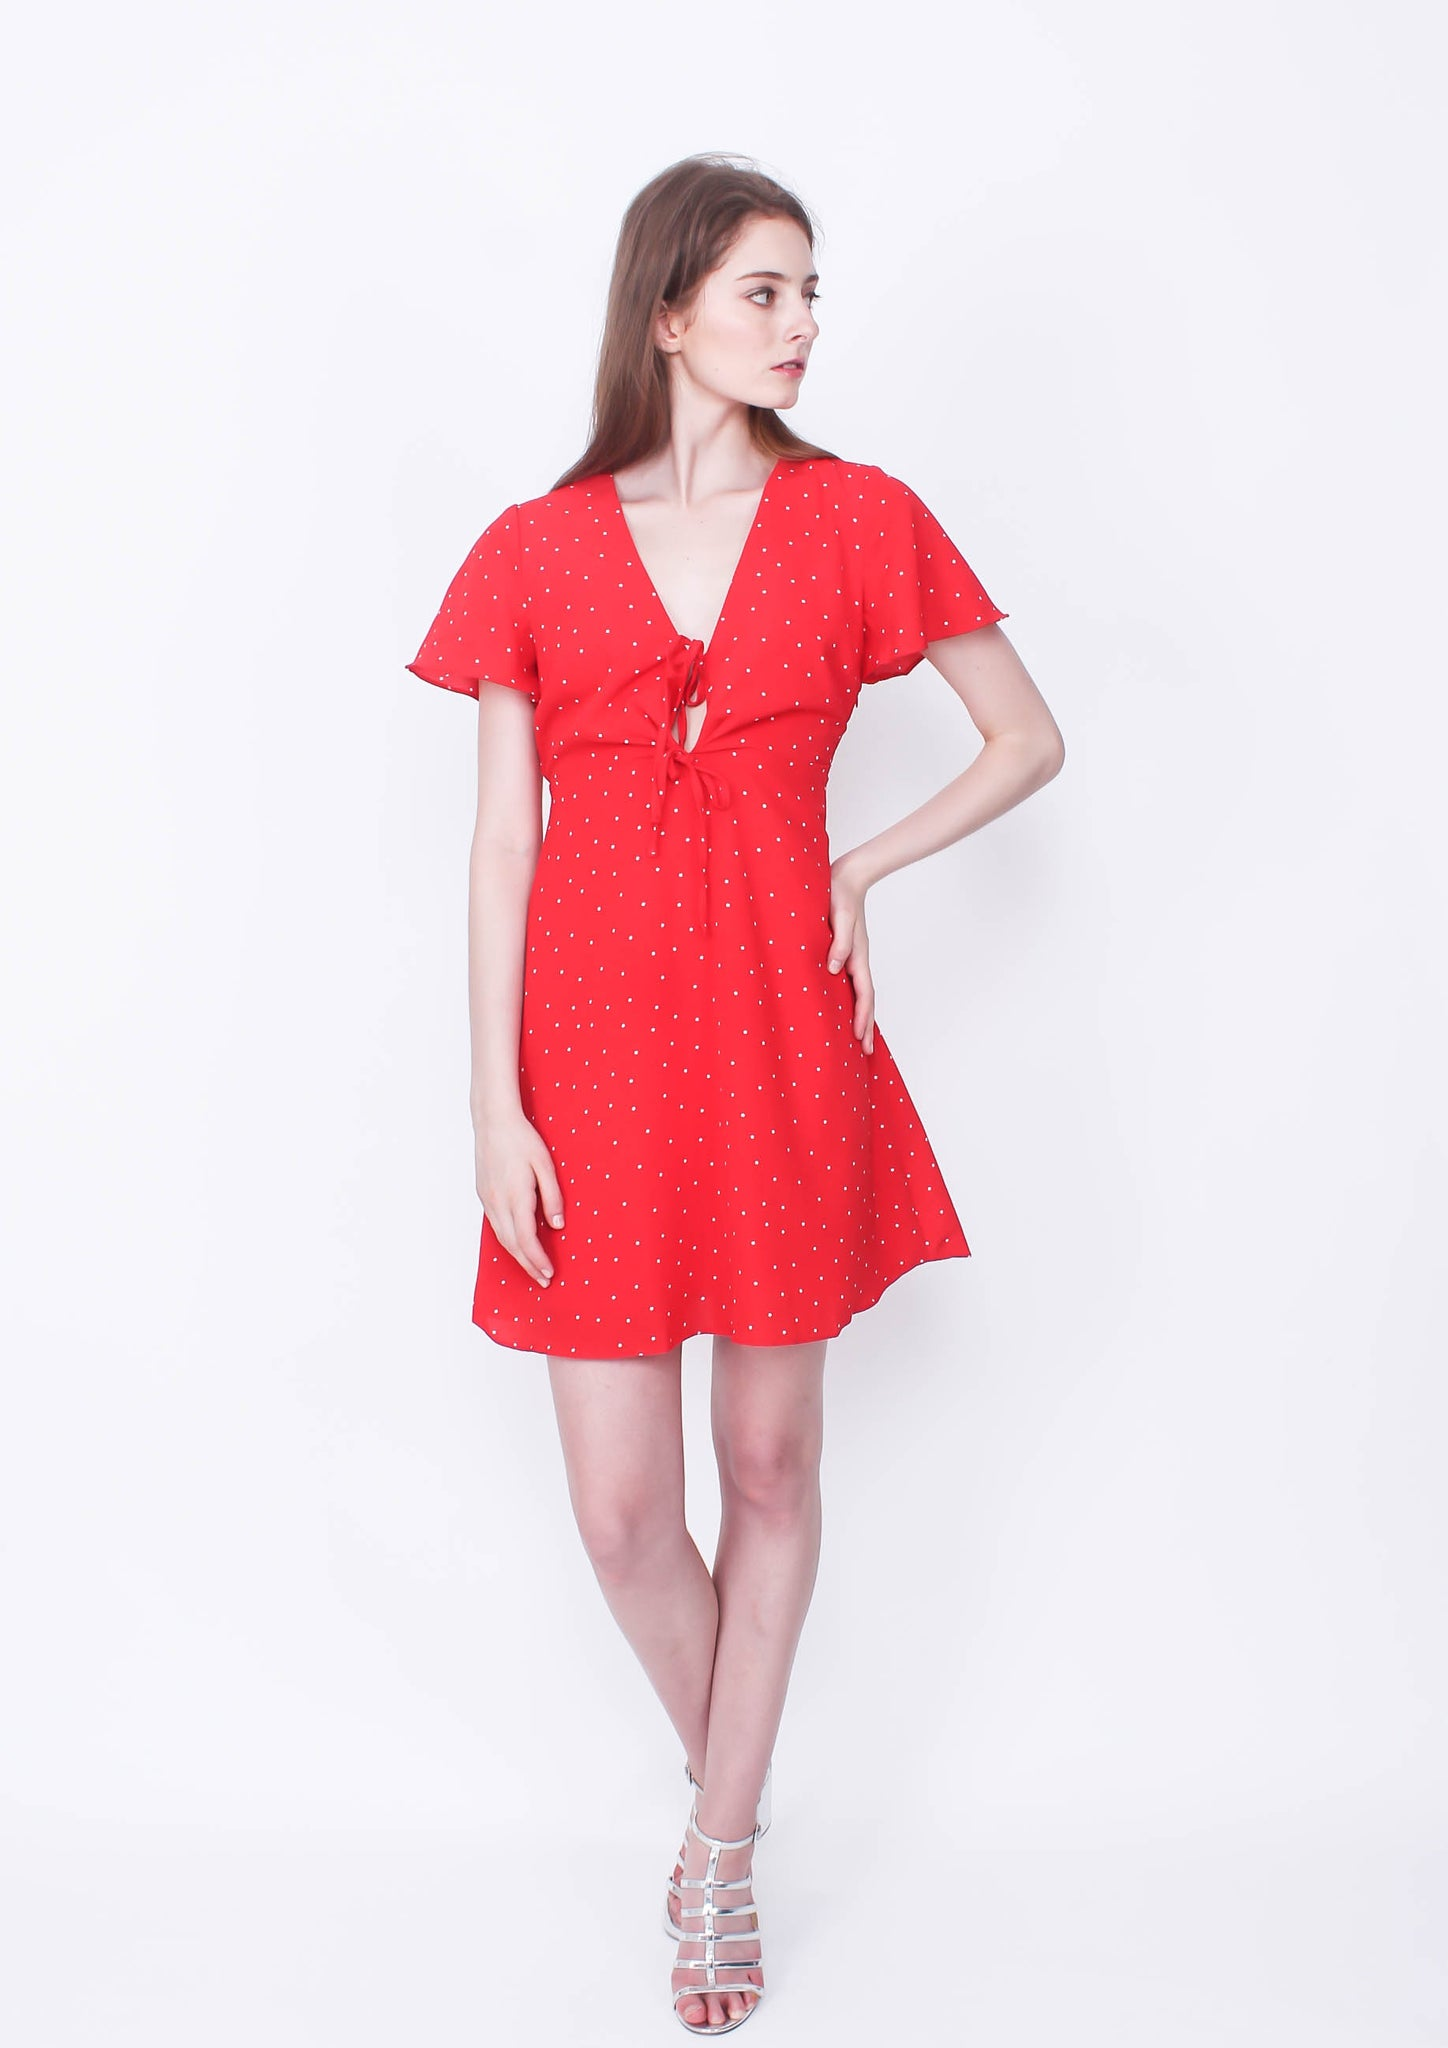 OH Honey Tea Dress - Moxie